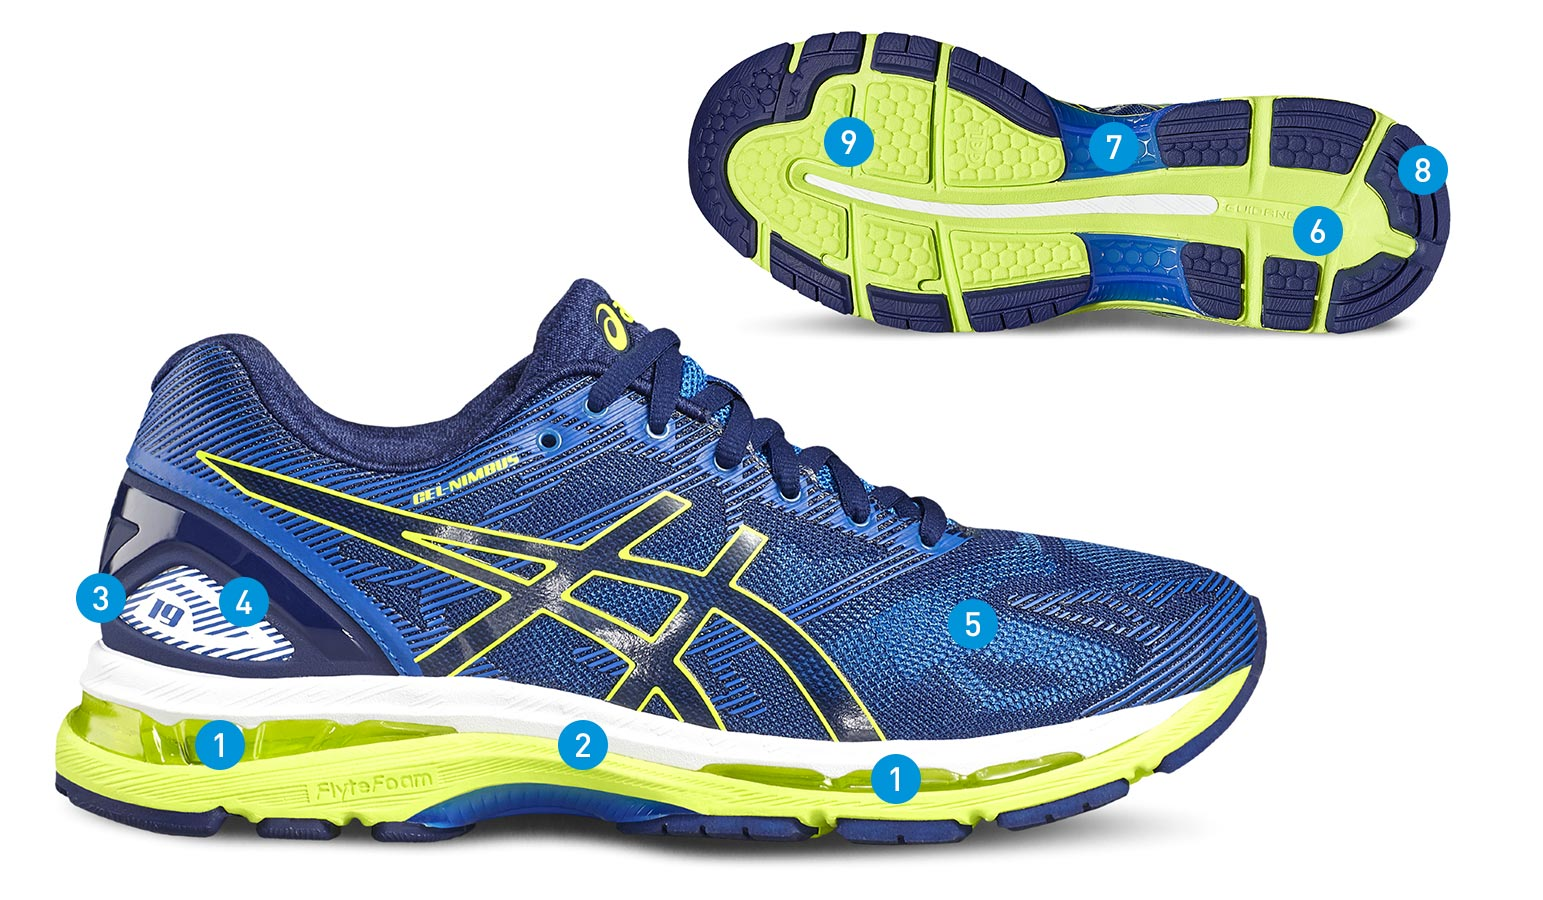 finest selection 3f152 74738 Asics Gel-Nimbus 19 Lite Show Blue Grey Black Women